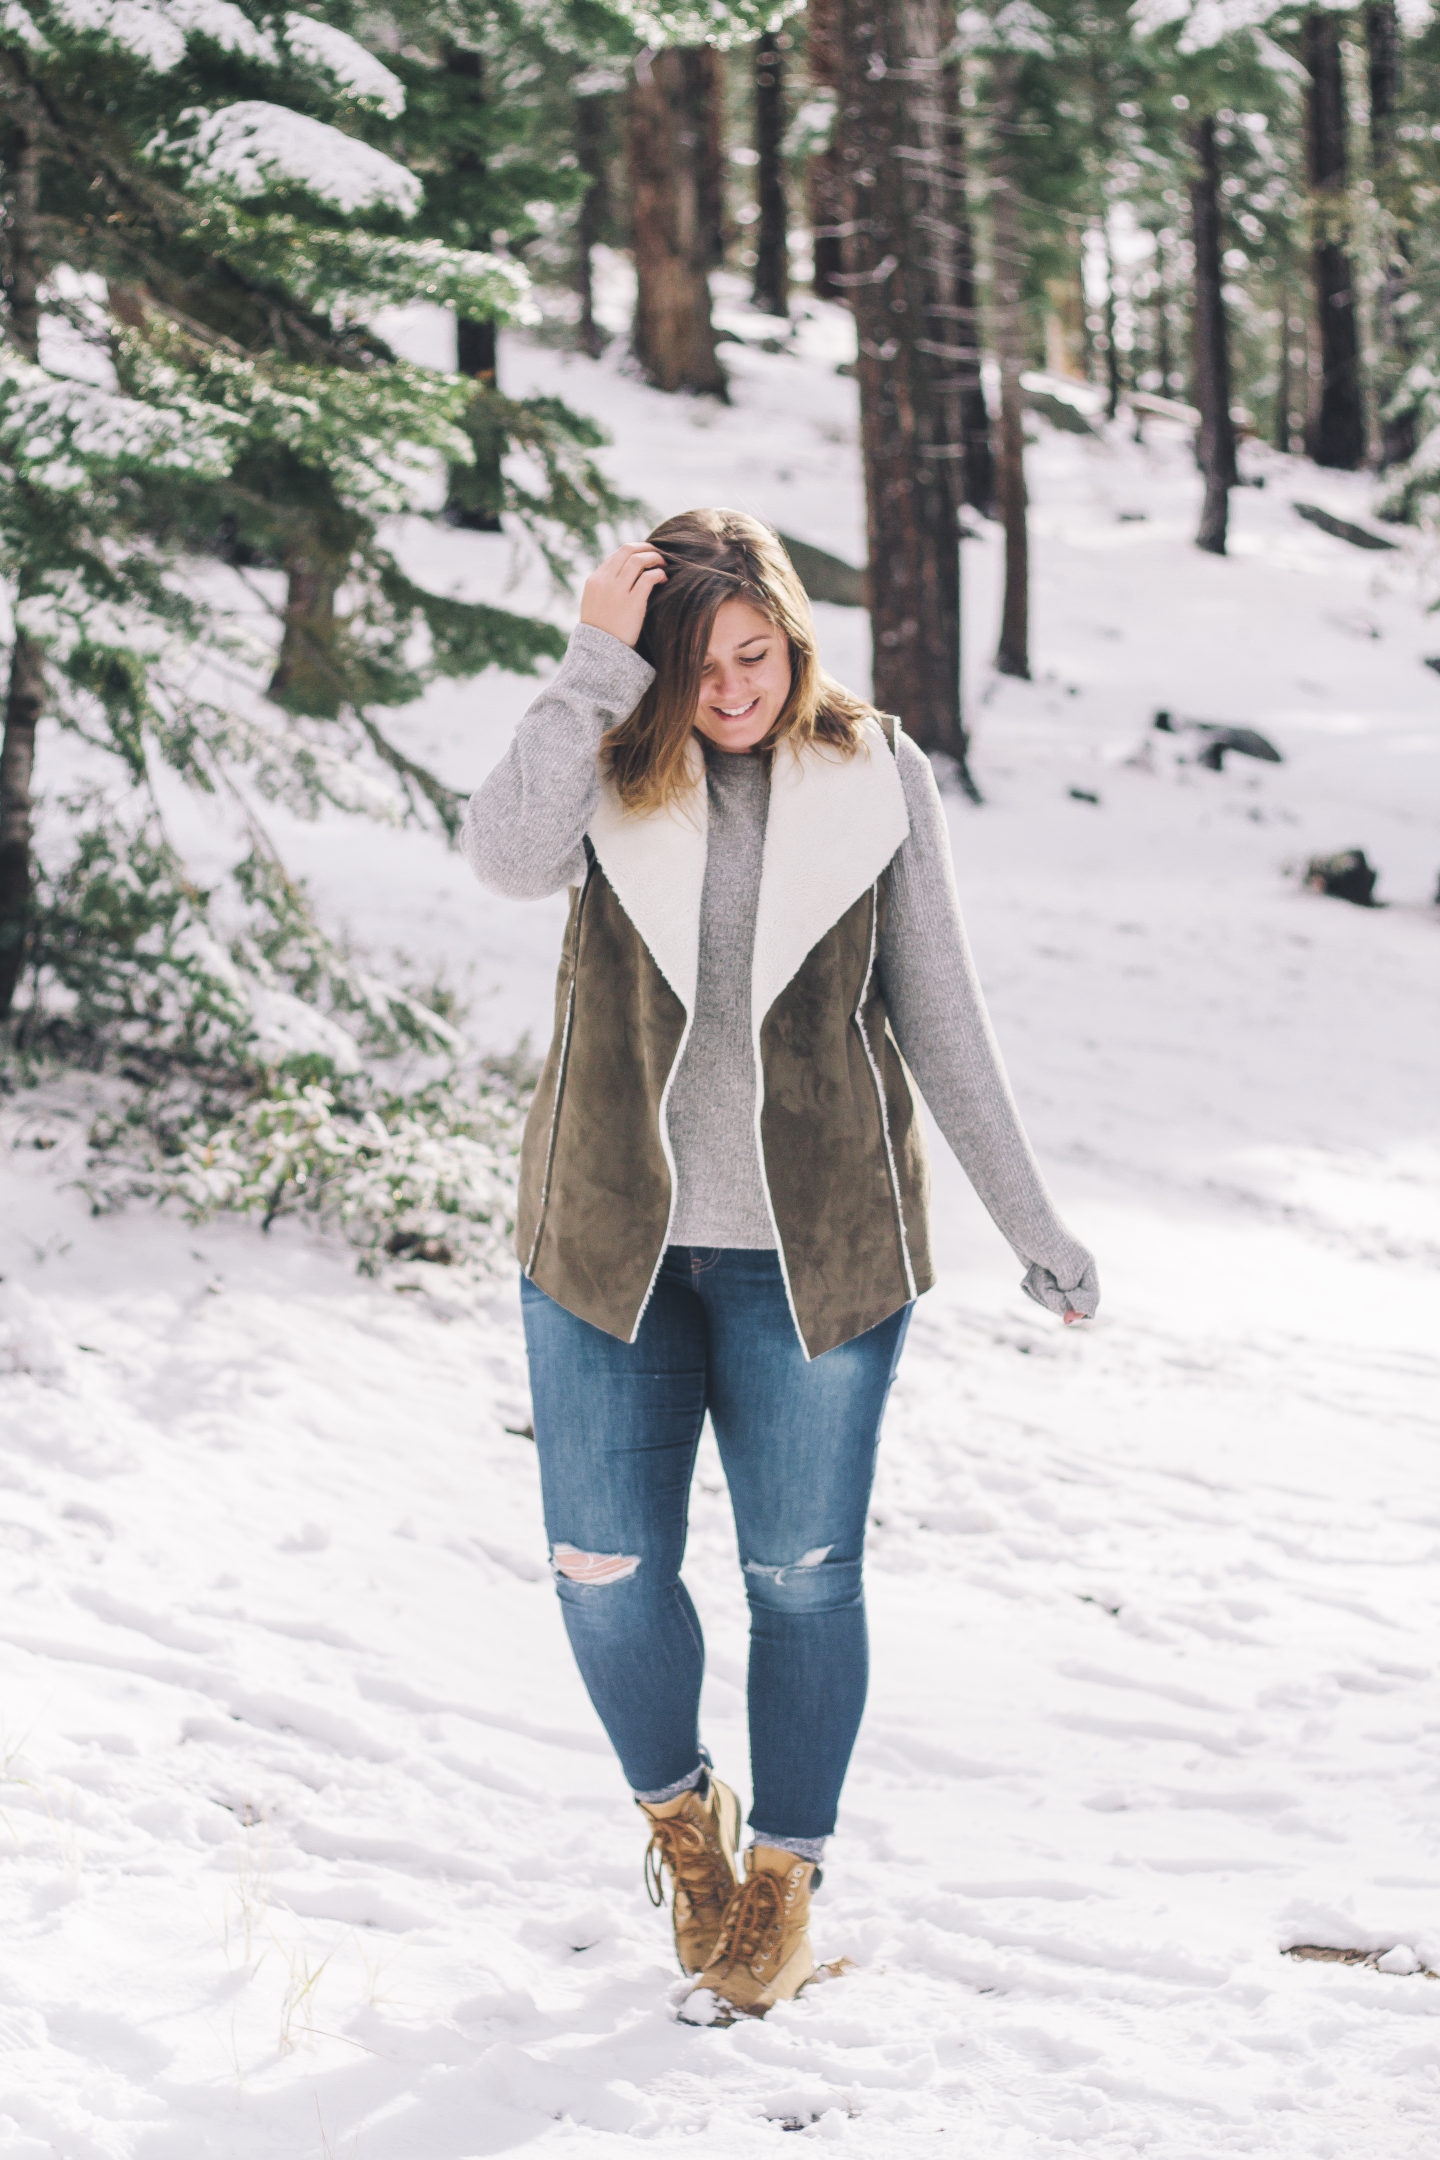 Winter Wonderland, snow day outfit // www.wanderabode.com